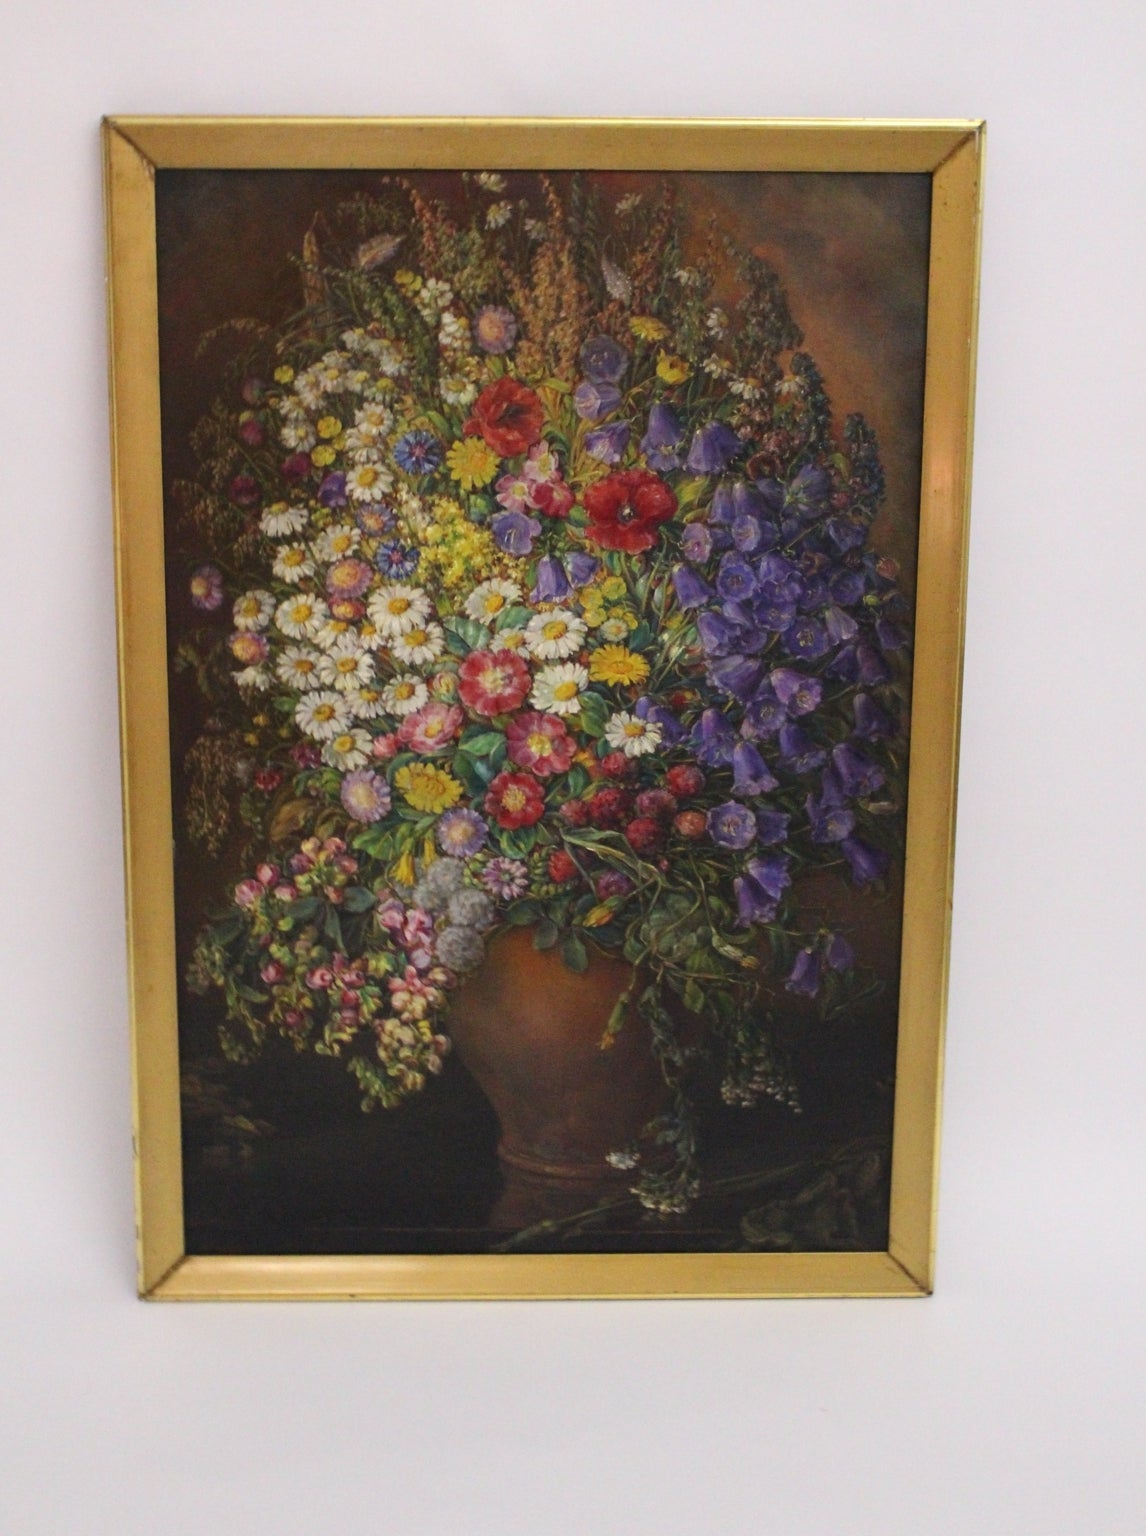 Wood Art Deco Vintage Painting Oil on Canvas Field Flowers by Emil Fiala 1933, Vienna For Sale